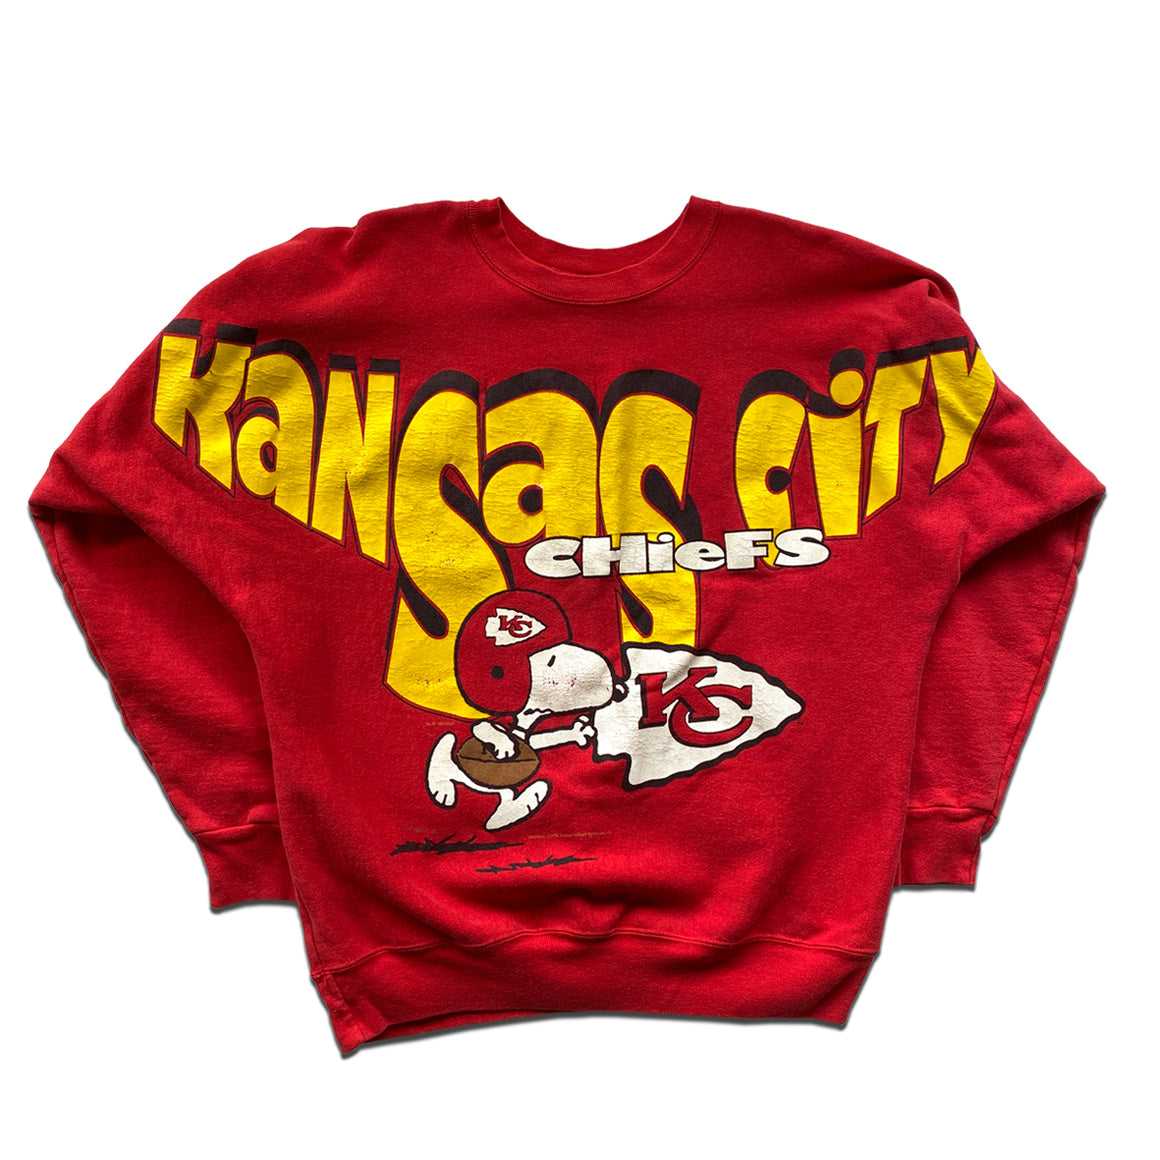 WESTSIDE STOREY VINTAGE | GARMENT GRAPHICS KC CHIEFS SNOOPY SPELL OUT SWEATSHIRT